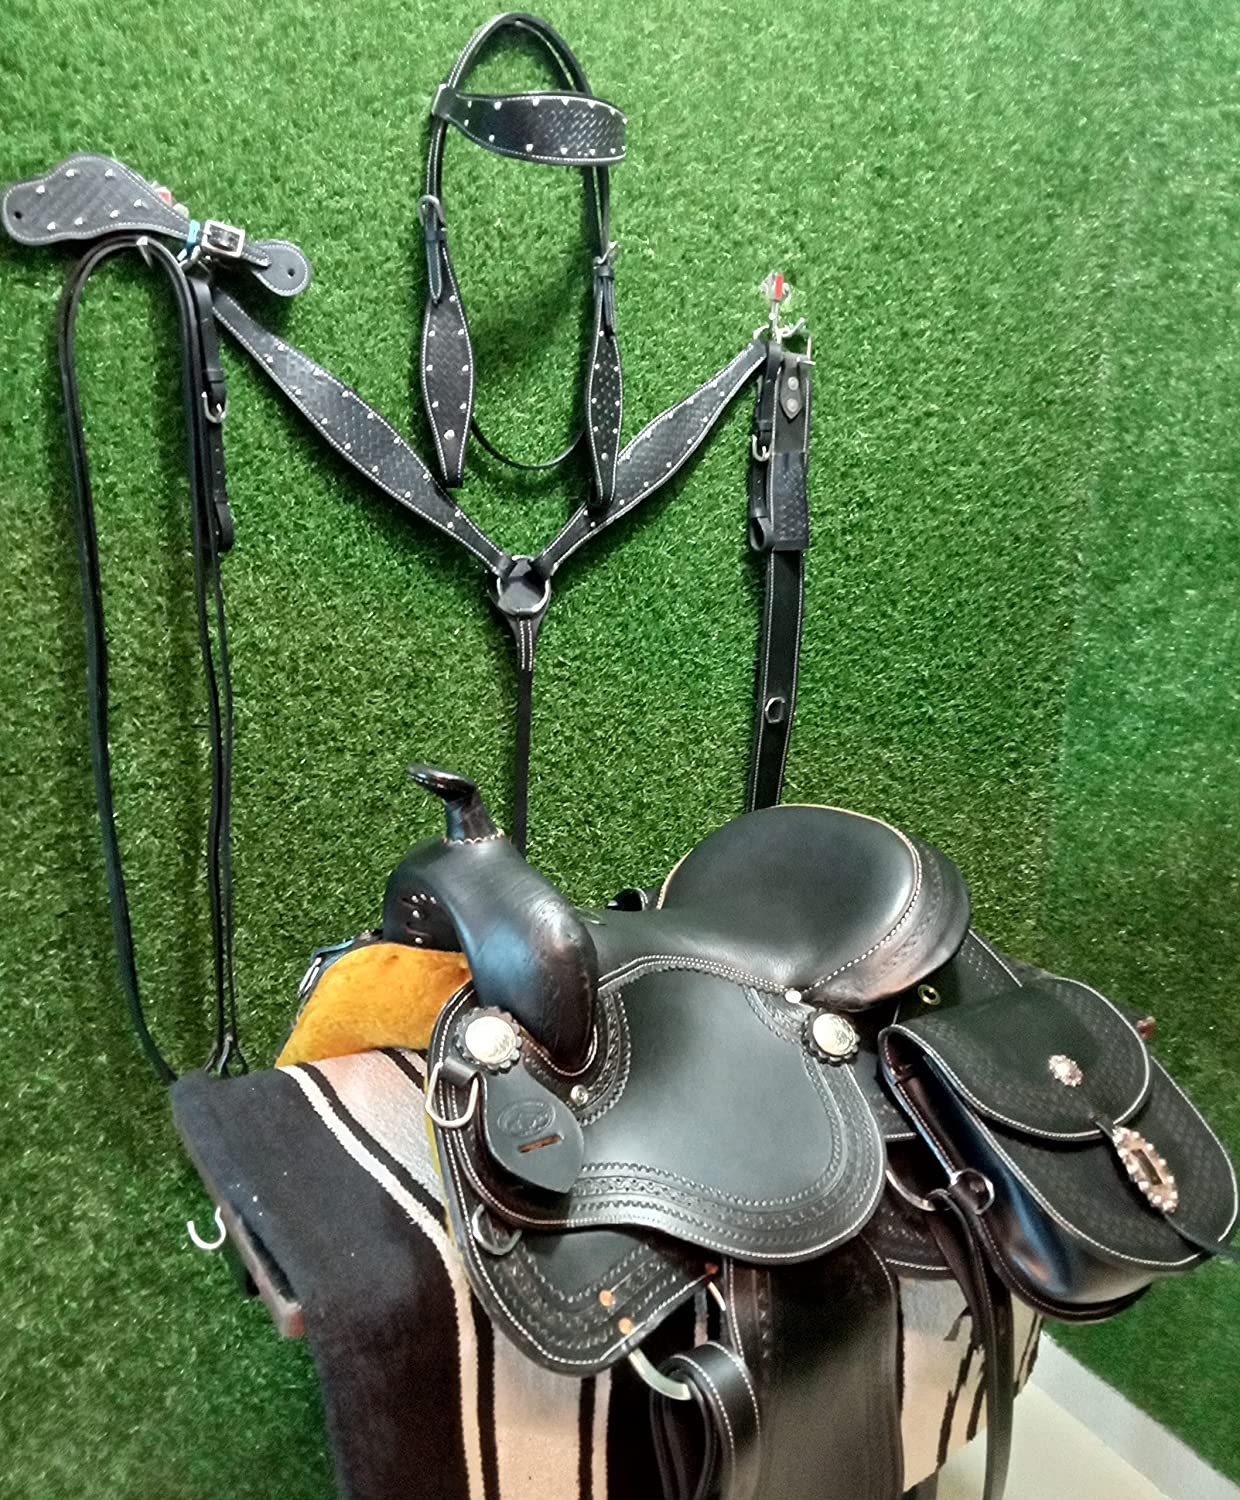 HORSE [Alternative dealer] SADDLERY IMPEX Youth Child Classic Quality Lowest price challenge Handmade Premi